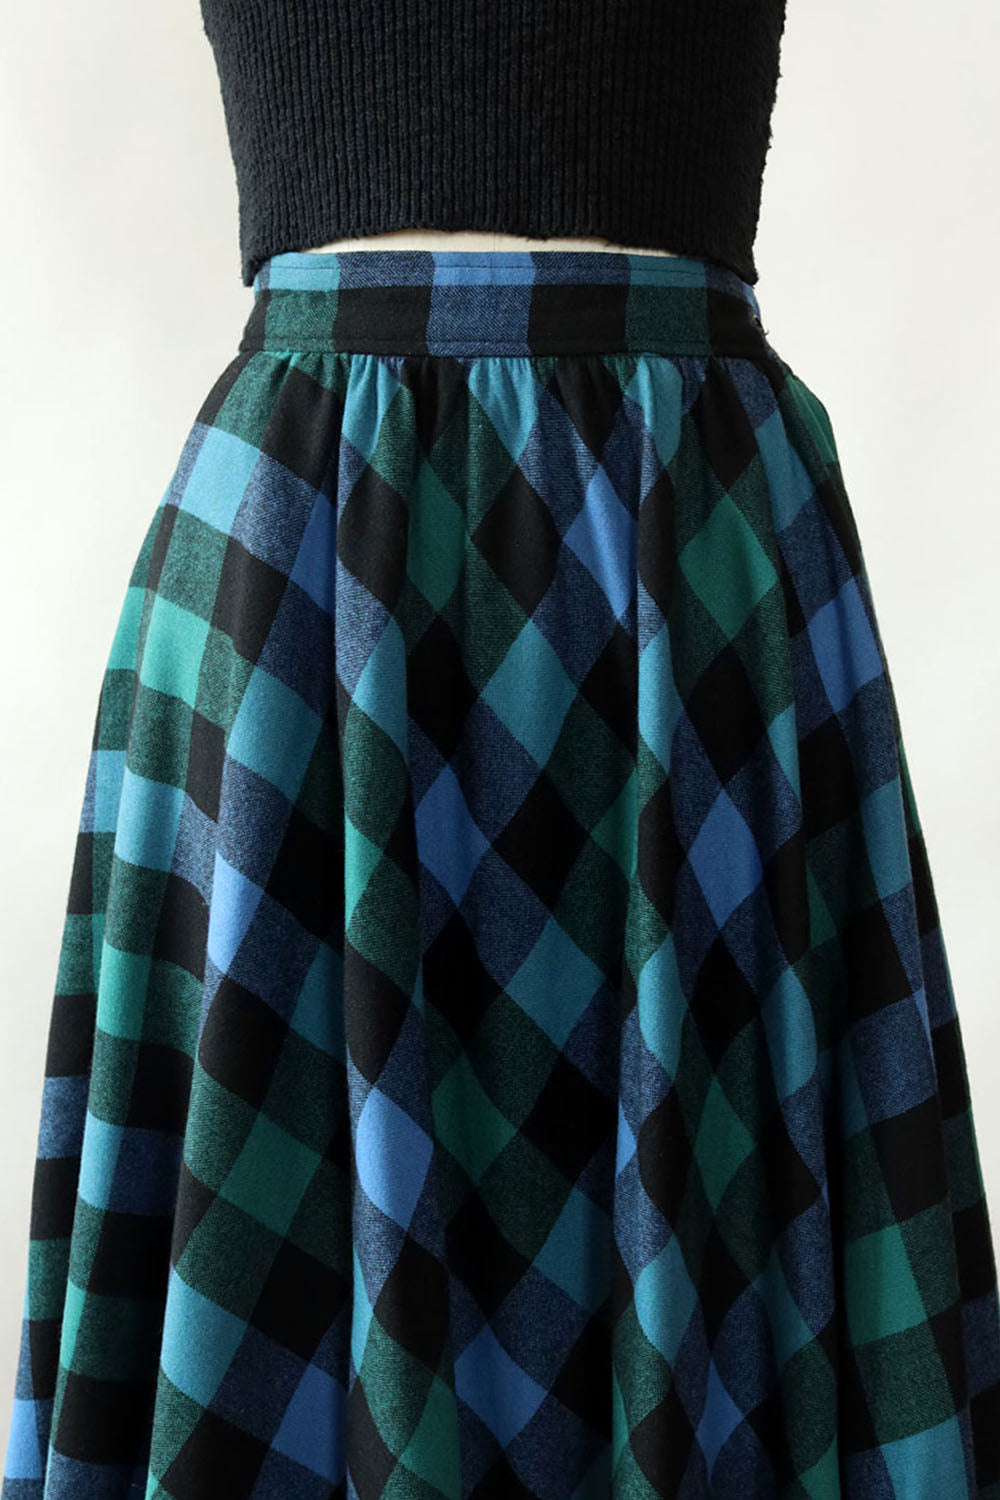 Box Plaid Swing Skirt XS